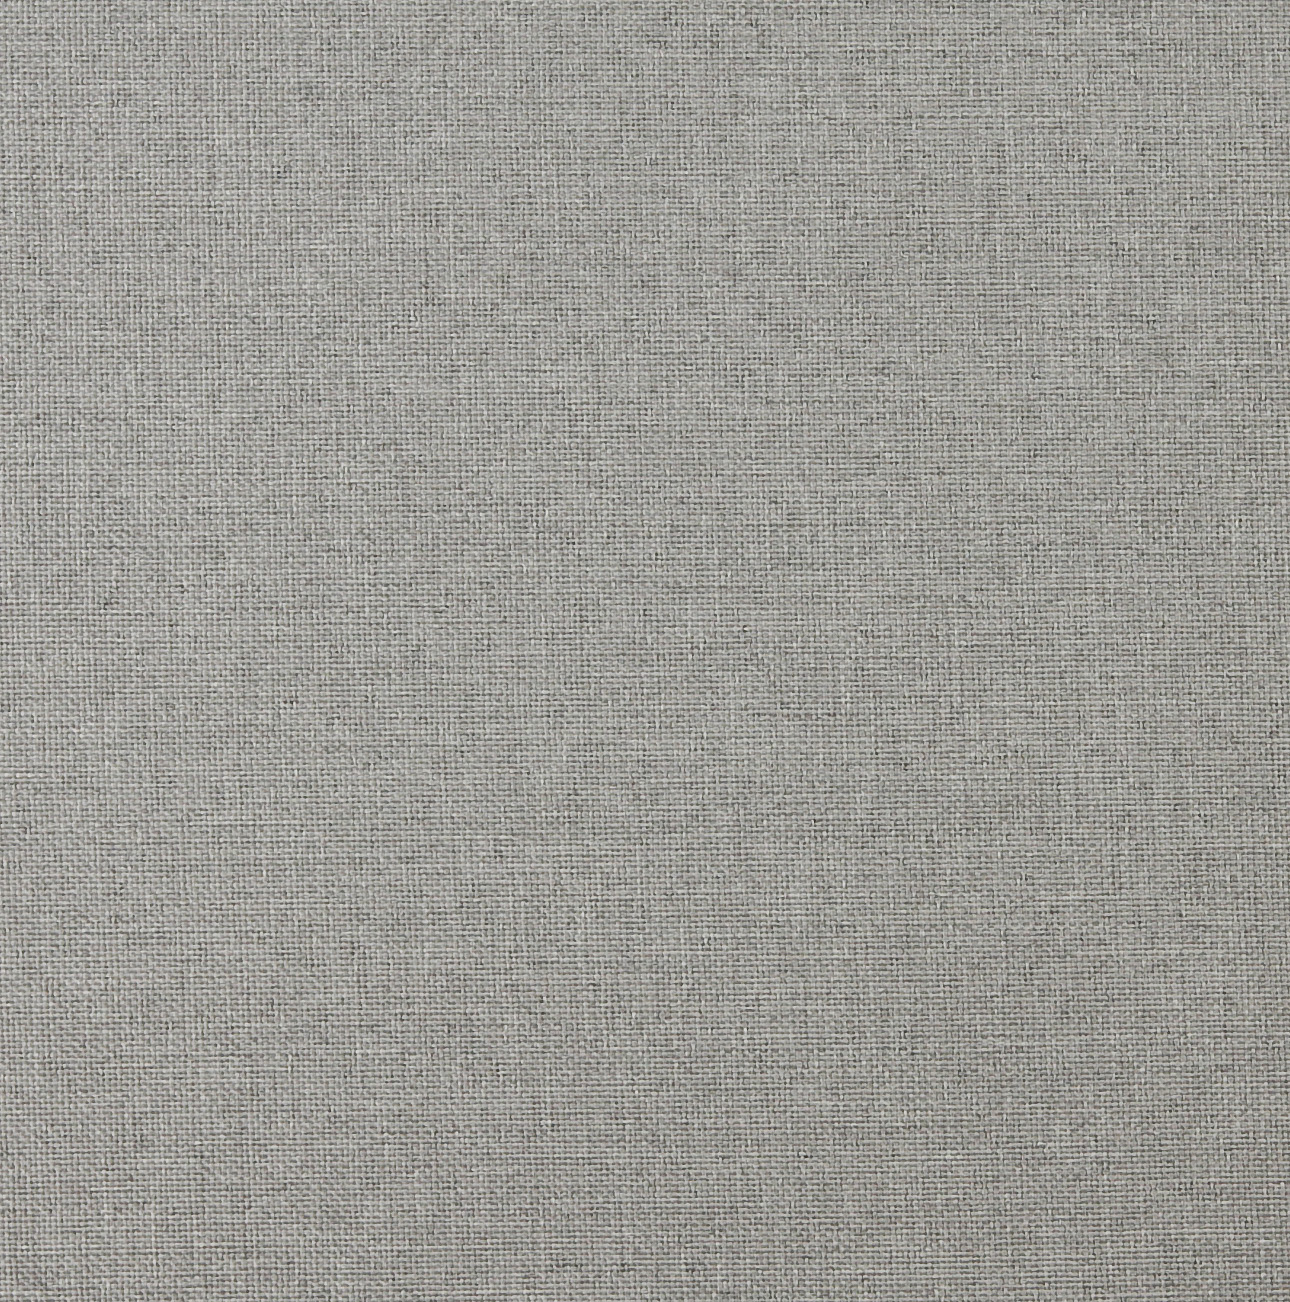 Pewter Grey Checkered Weave Tweed Upholstery Fabric